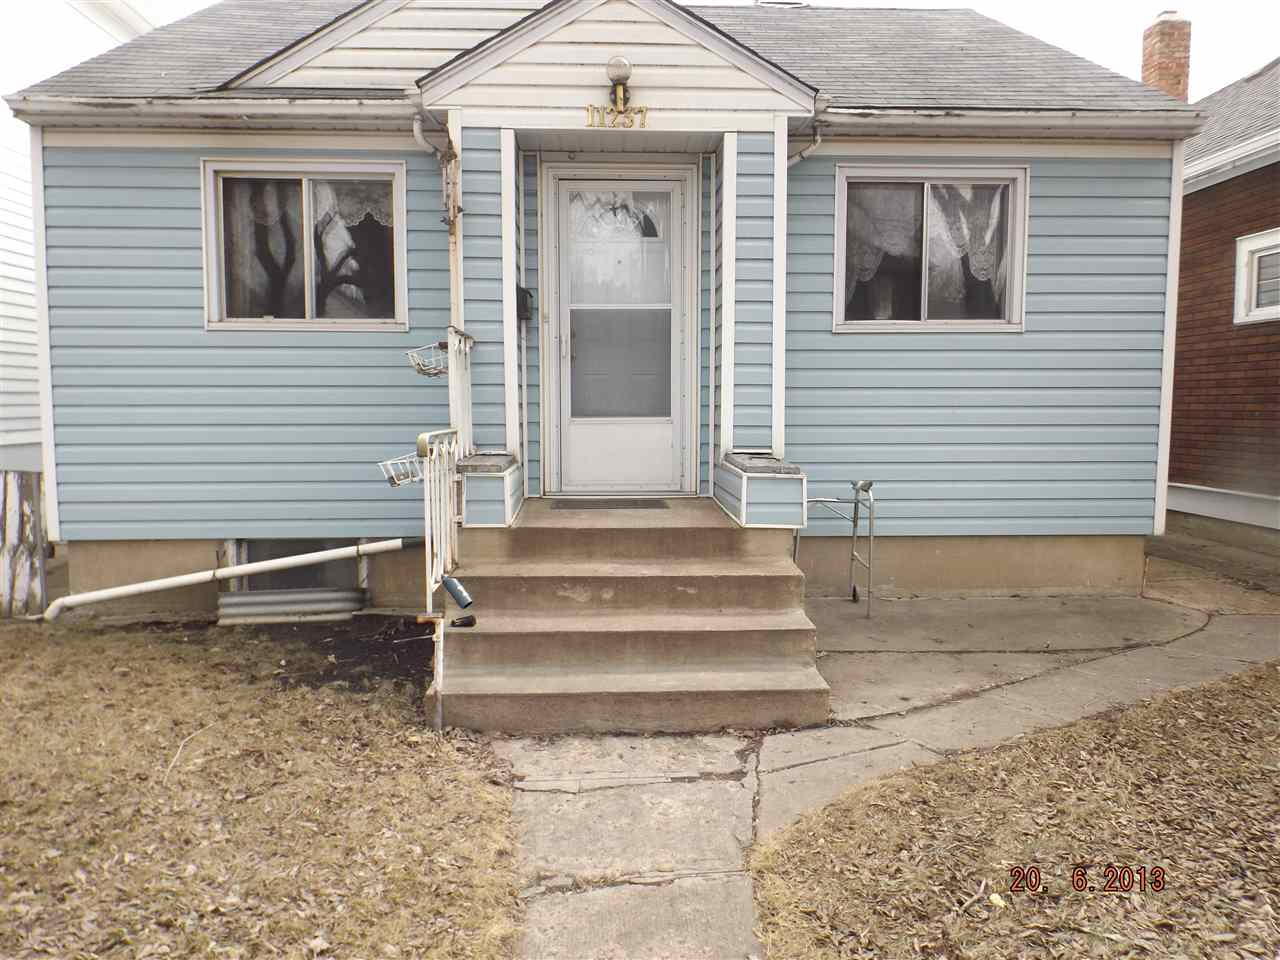 WHERE CAN YOU FIND A SOLID HOME FOR LESS THAN $200,000-?. PLUS GARAGE, AND GREEN HOUSE.... .BRIGHT KITCHEN WITH LOADS OF CUPBOARDS, EATING, DINING AREA.  OPEN LIVING ROOM,  4 PC. BATHROOM, NICE SIZE MASTER BEDROOM. BASEMENT DEVELOPMENT SPORTS REC ROOM , BEDROOM.  WALKING DISTANCE TO SHOPPING, REC CENTER, NEW FIRE HALL, TRANSPORTATION, FOOTBALL GAMES, CARE CENTER, PLUS MUCH MORE. DO NOT LOSE YOUR INDEPENDENCE. TAKE A PEEK AND SEE!  EASY SHOW...